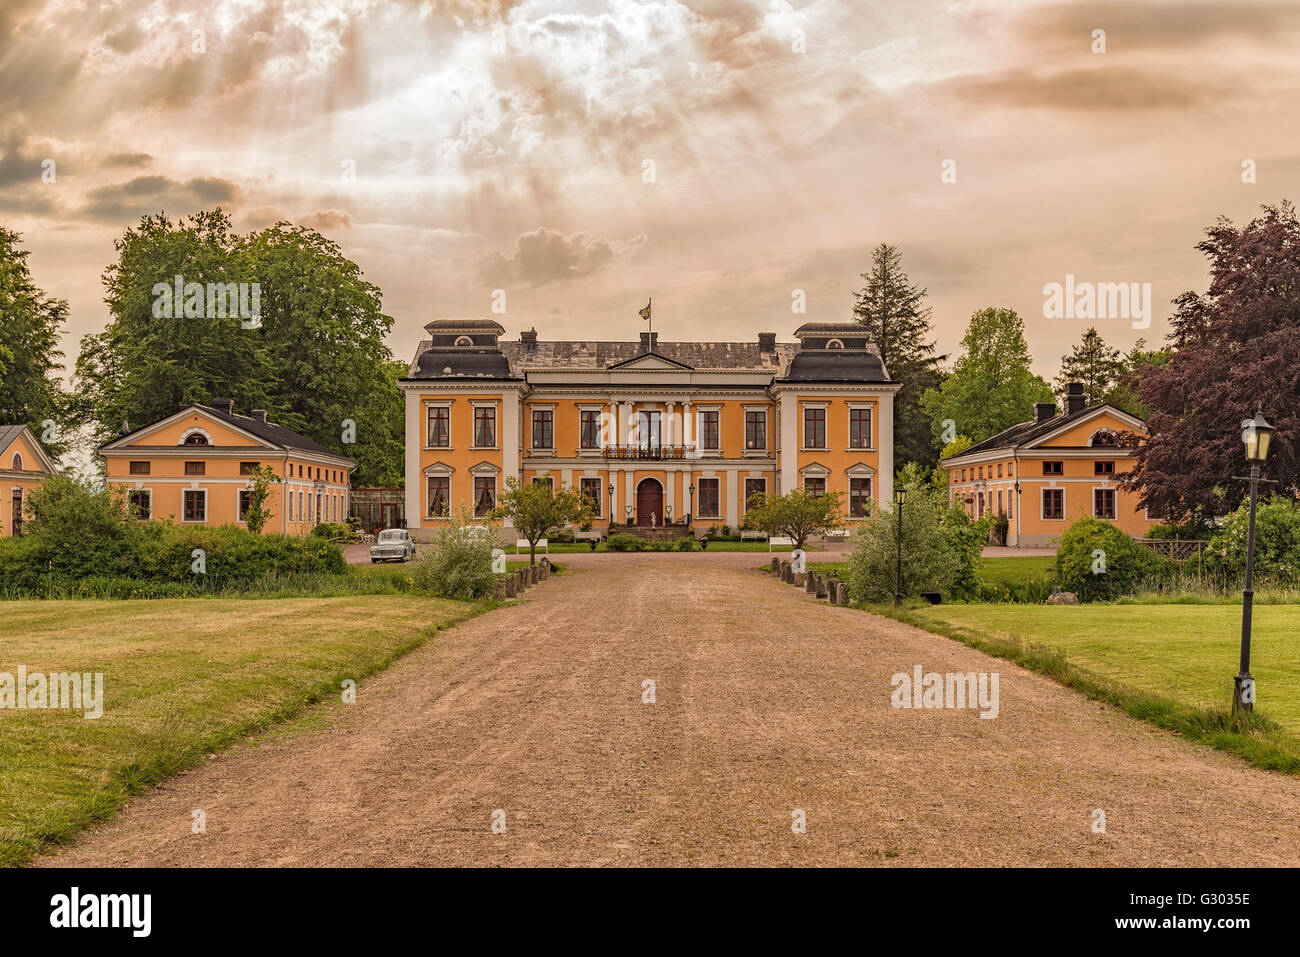 An image of Skottorps castle situated in the halland region of Sweden. - Stock Image